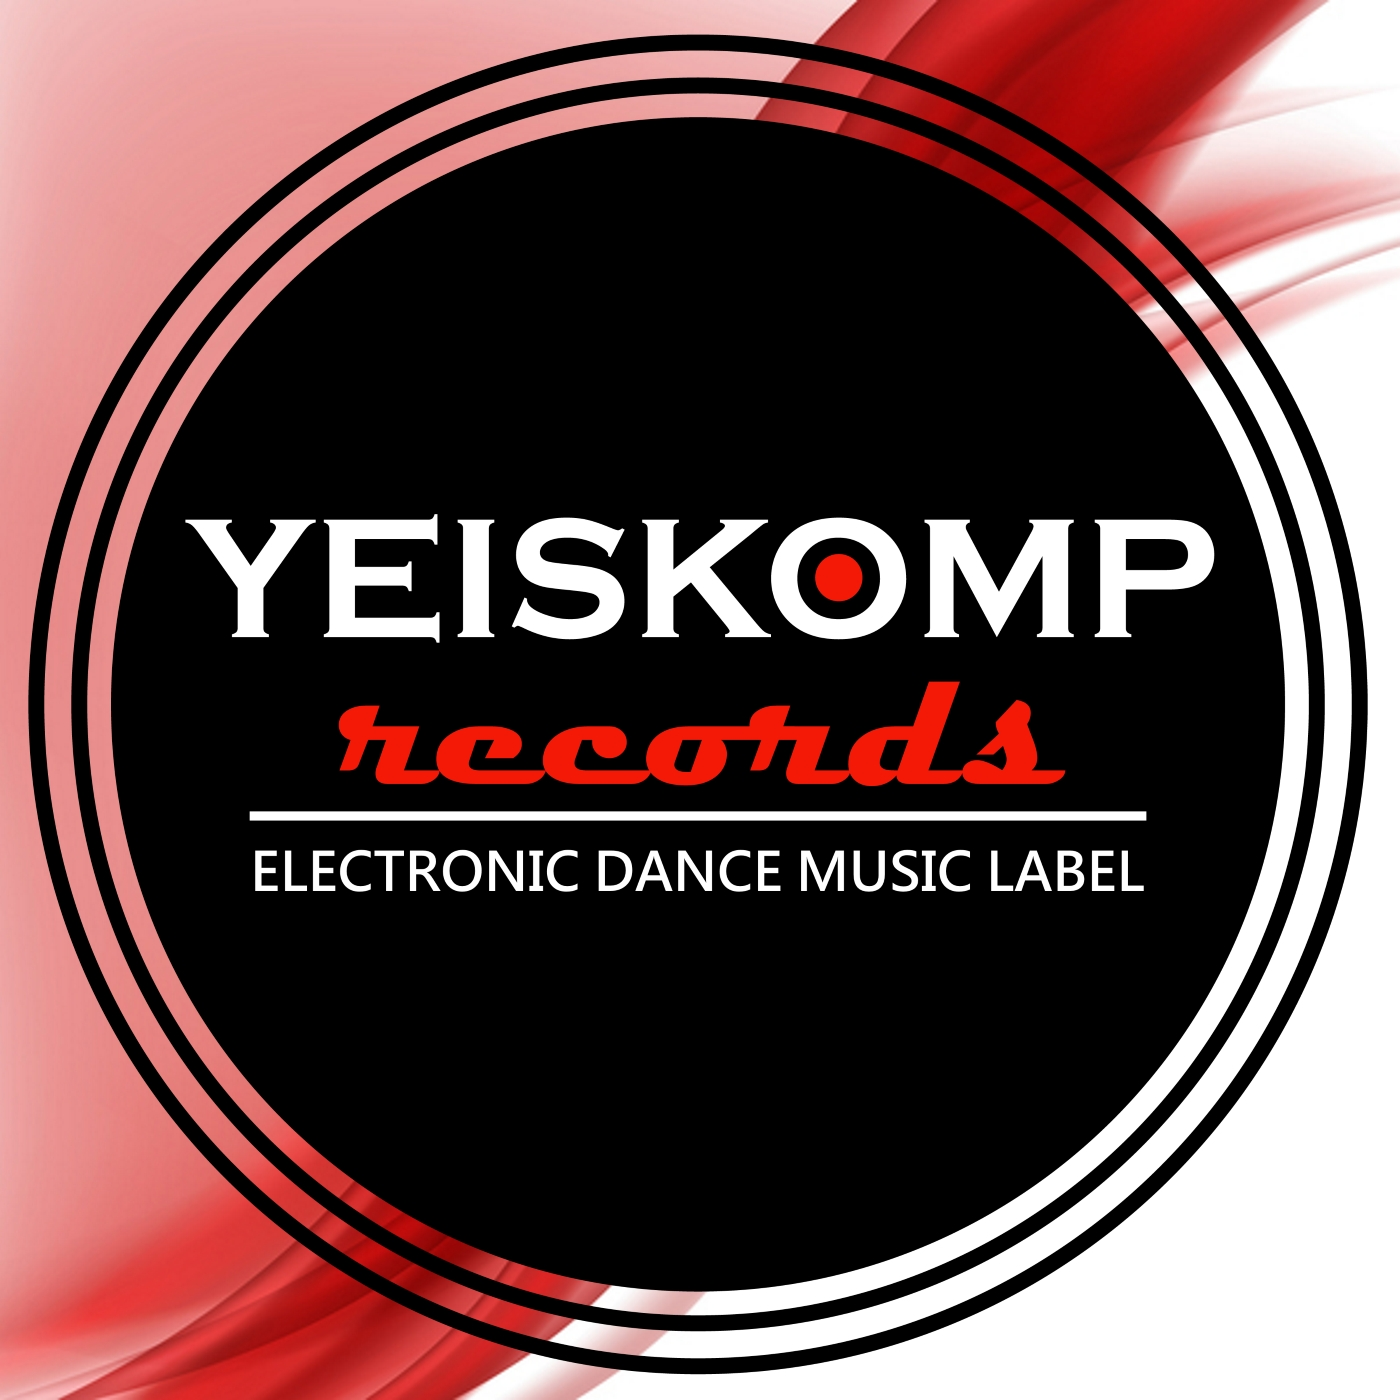 Yeiskomp Records